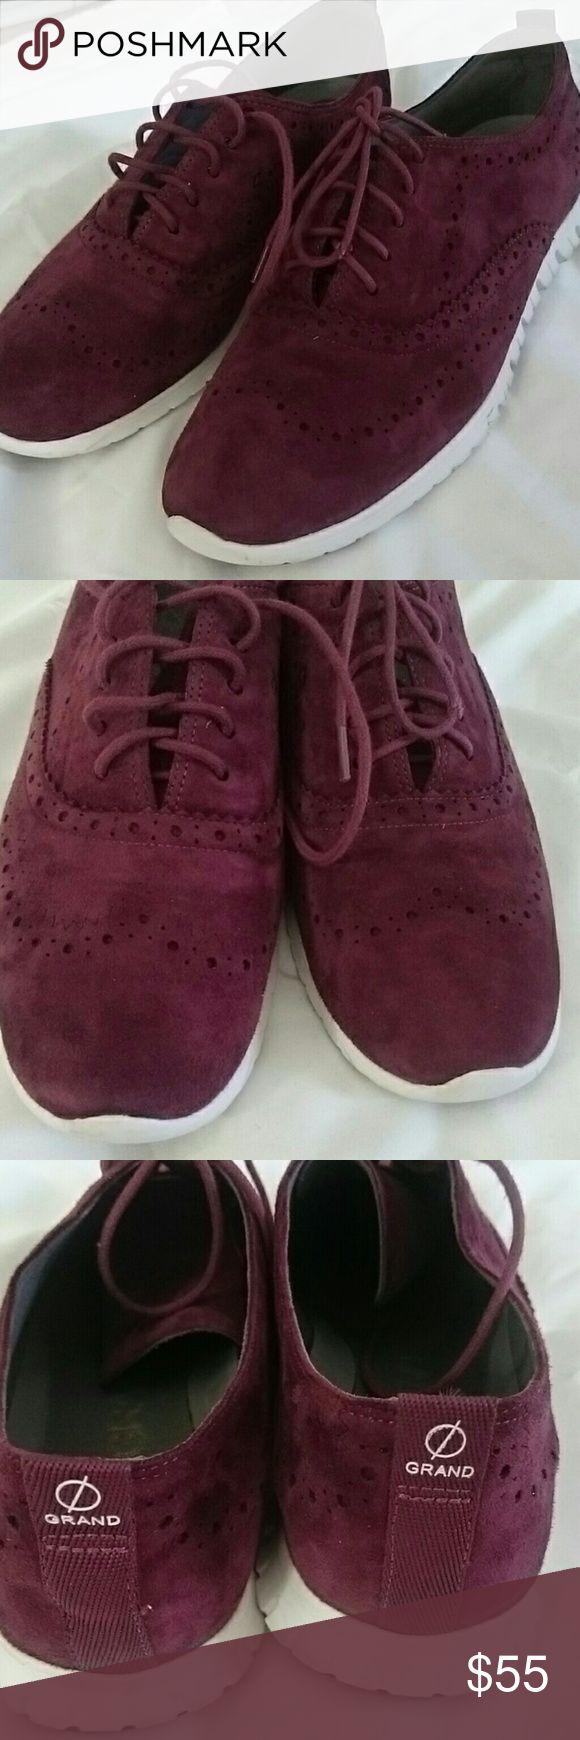 Cole Haan Zero Grand Burgundy Perfect shape gently used. The lace has a tiny damage not visible. Cole Haan Shoes